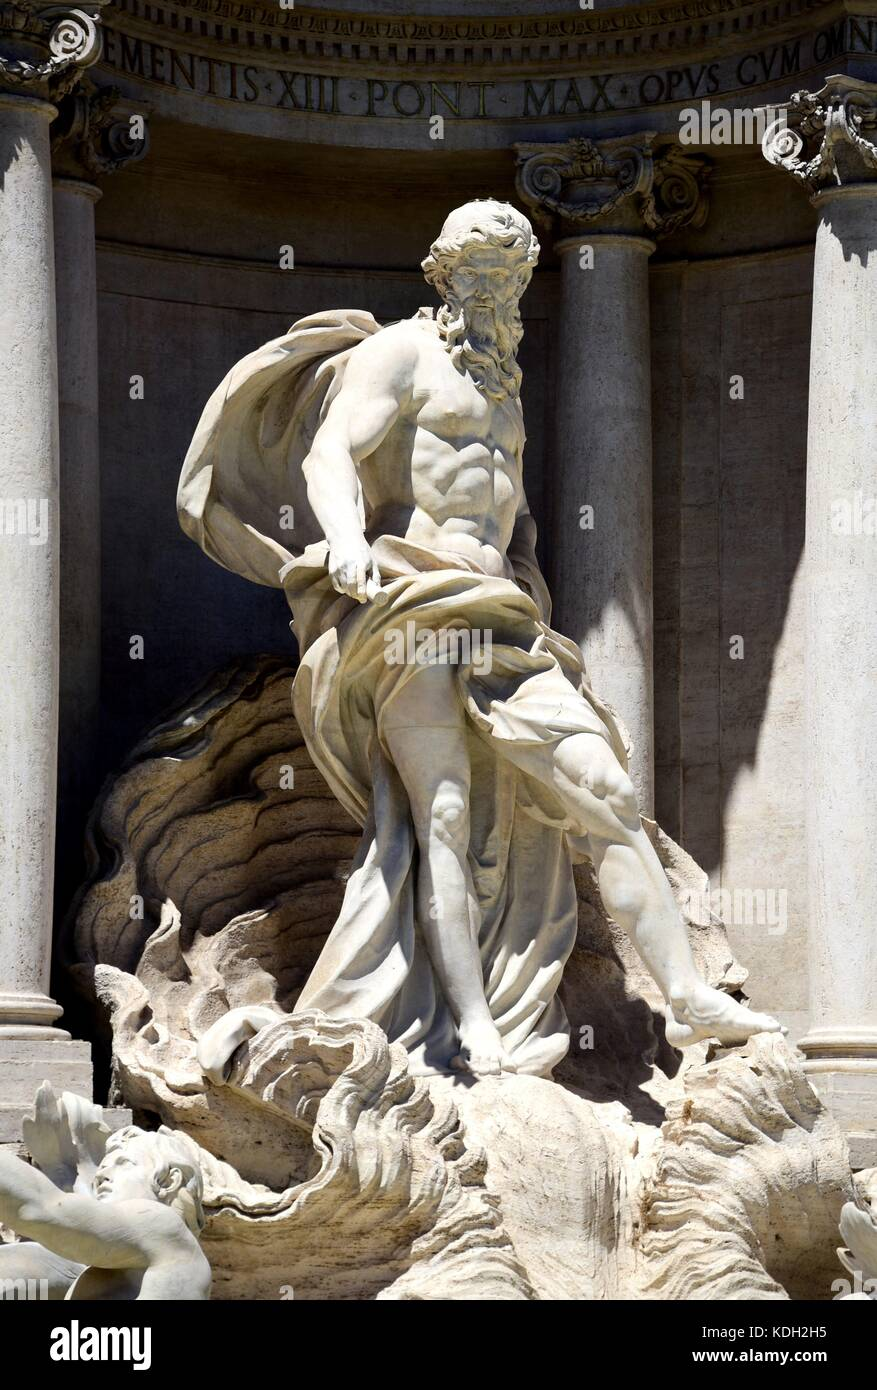 Artistical facade with a sculpture of Oceanus at the Fontana di Trevi at the Piazza Trevi in Rome (Italy), 18 July - Stock Image